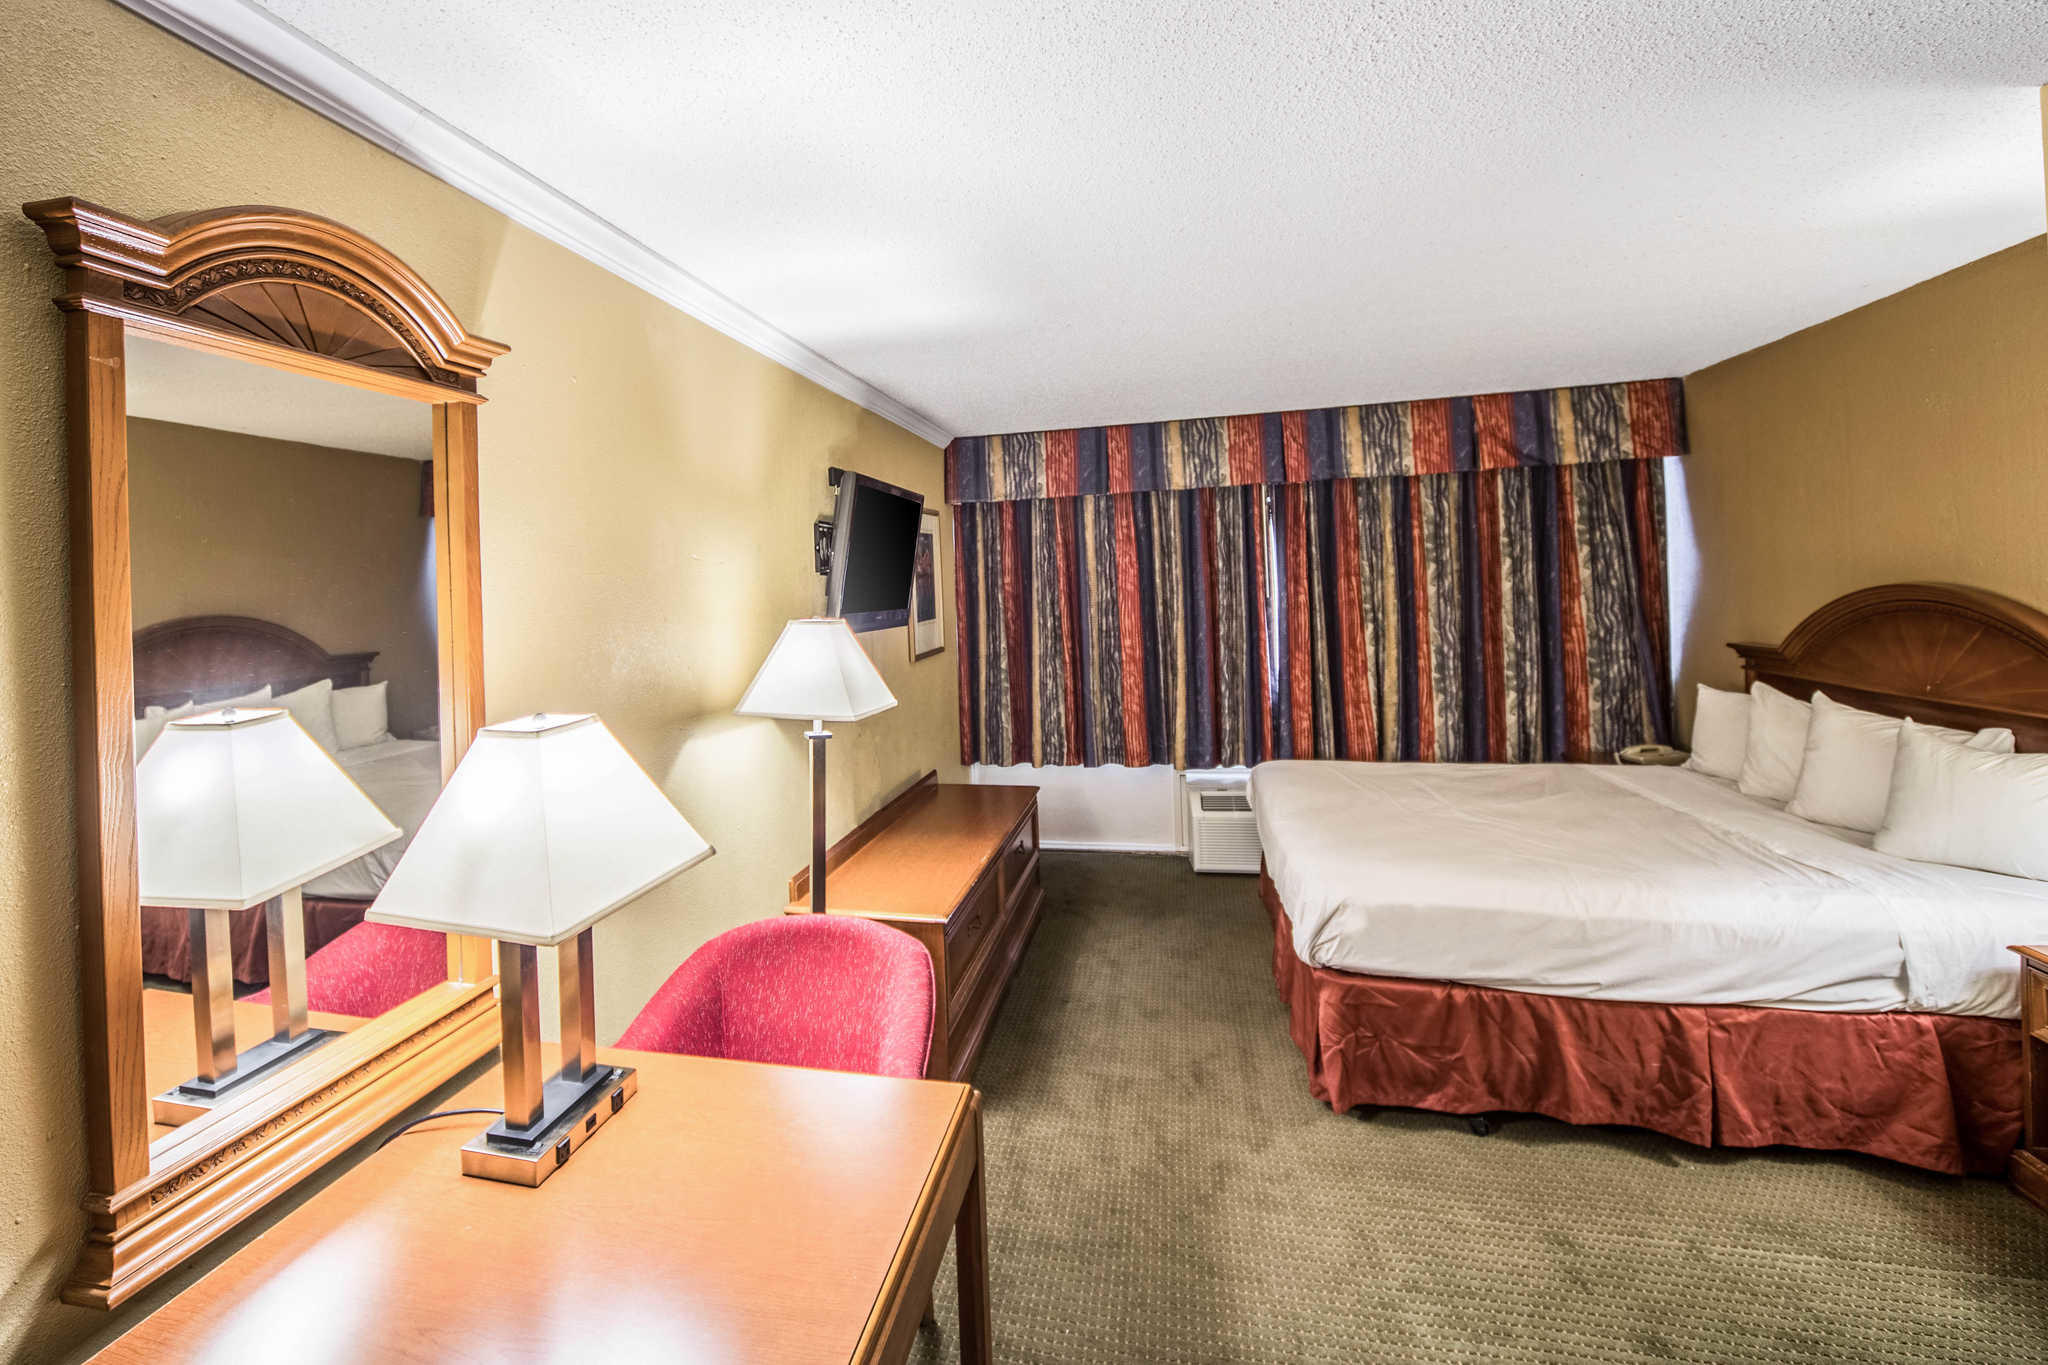 Suburban Extended Stay Hotel image 22